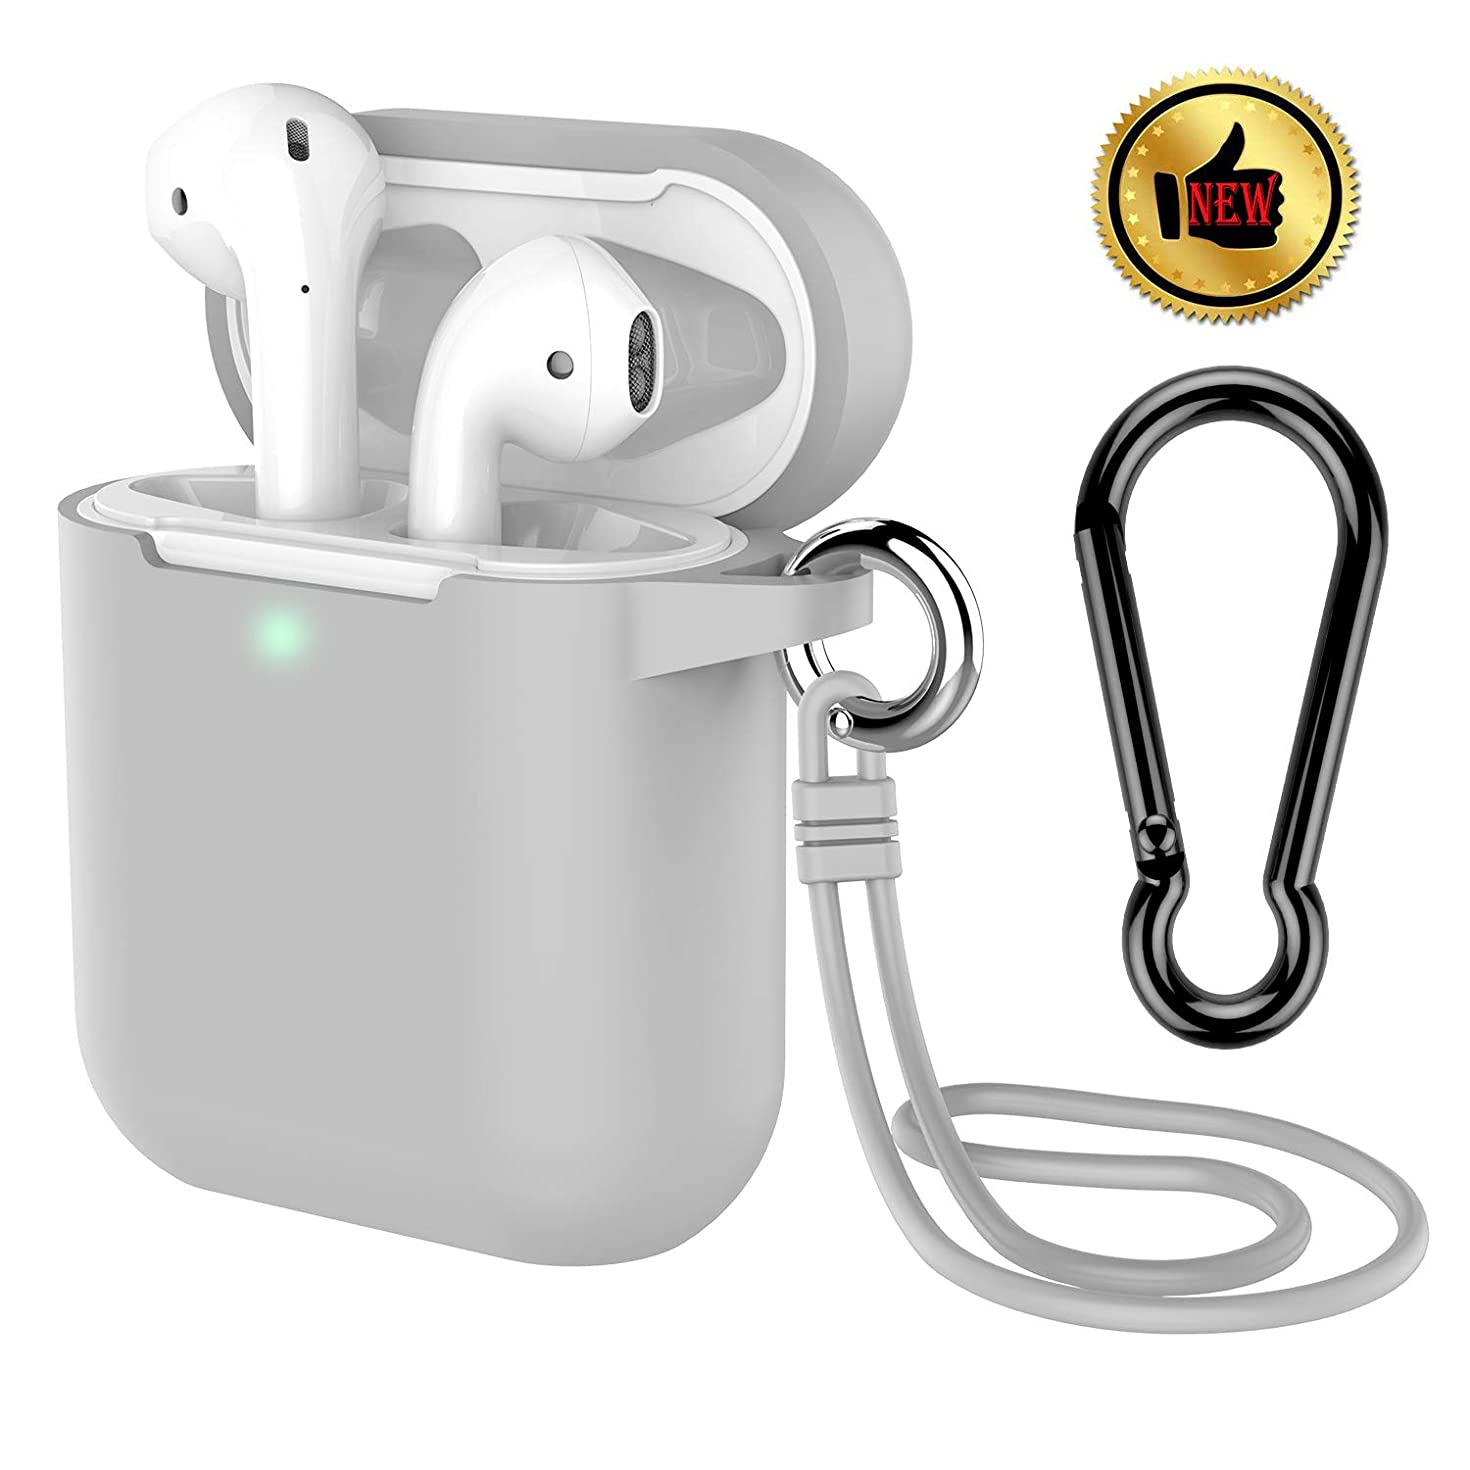 AirPods Case, Coffea Protective Silicone Cover Skin with Keychain/Stap for Apple AirPods 2 Wireless Charging Case [Front LED Visible] (Gray)